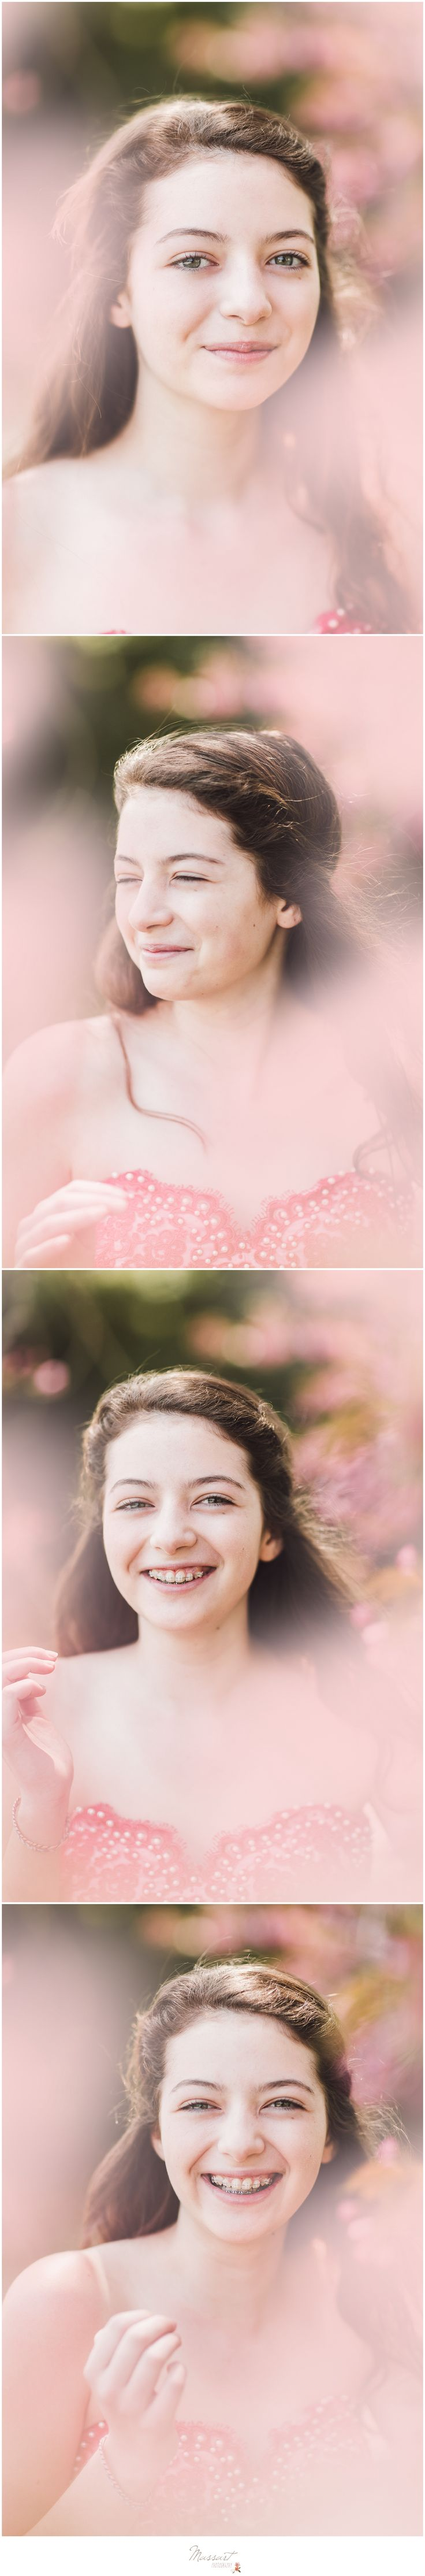 Spring family photo shoot of teenage girl in a pink gown under a cherry blossom tree photographed by Massart Photography of Warwick, Rhode Island.   www.massartphotography.com; info@massartphotography.com